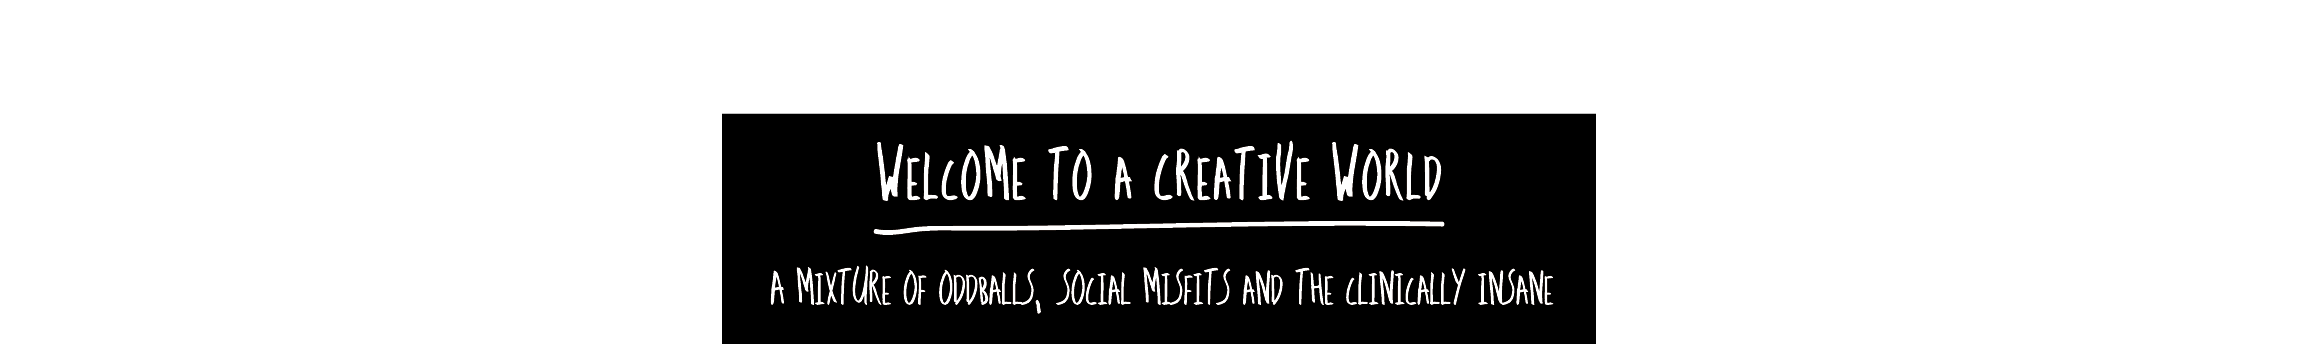 Welcome to a creative world